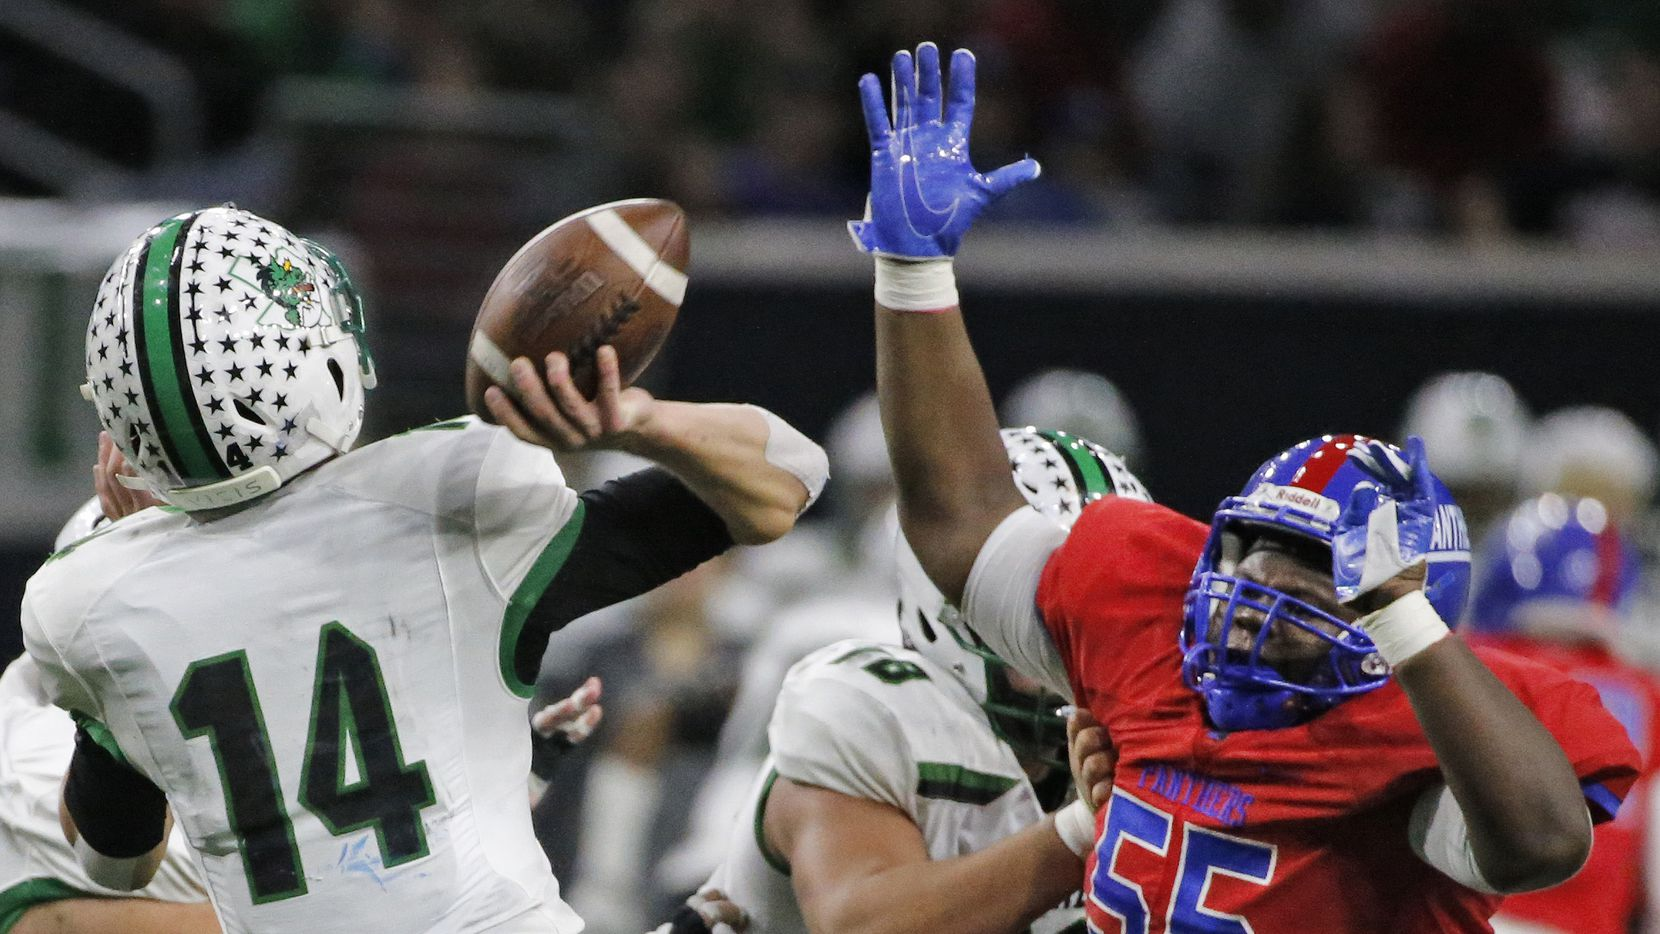 Duncanville defensive lineman De'Braylon Carroll (55) is pictured during the Southlake Carroll Dragons vs. the Duncanville Panthers Class 6A Division I Region I high school football playoff game at the Star in Frisco, Texas on Saturday, December 8, 2018.